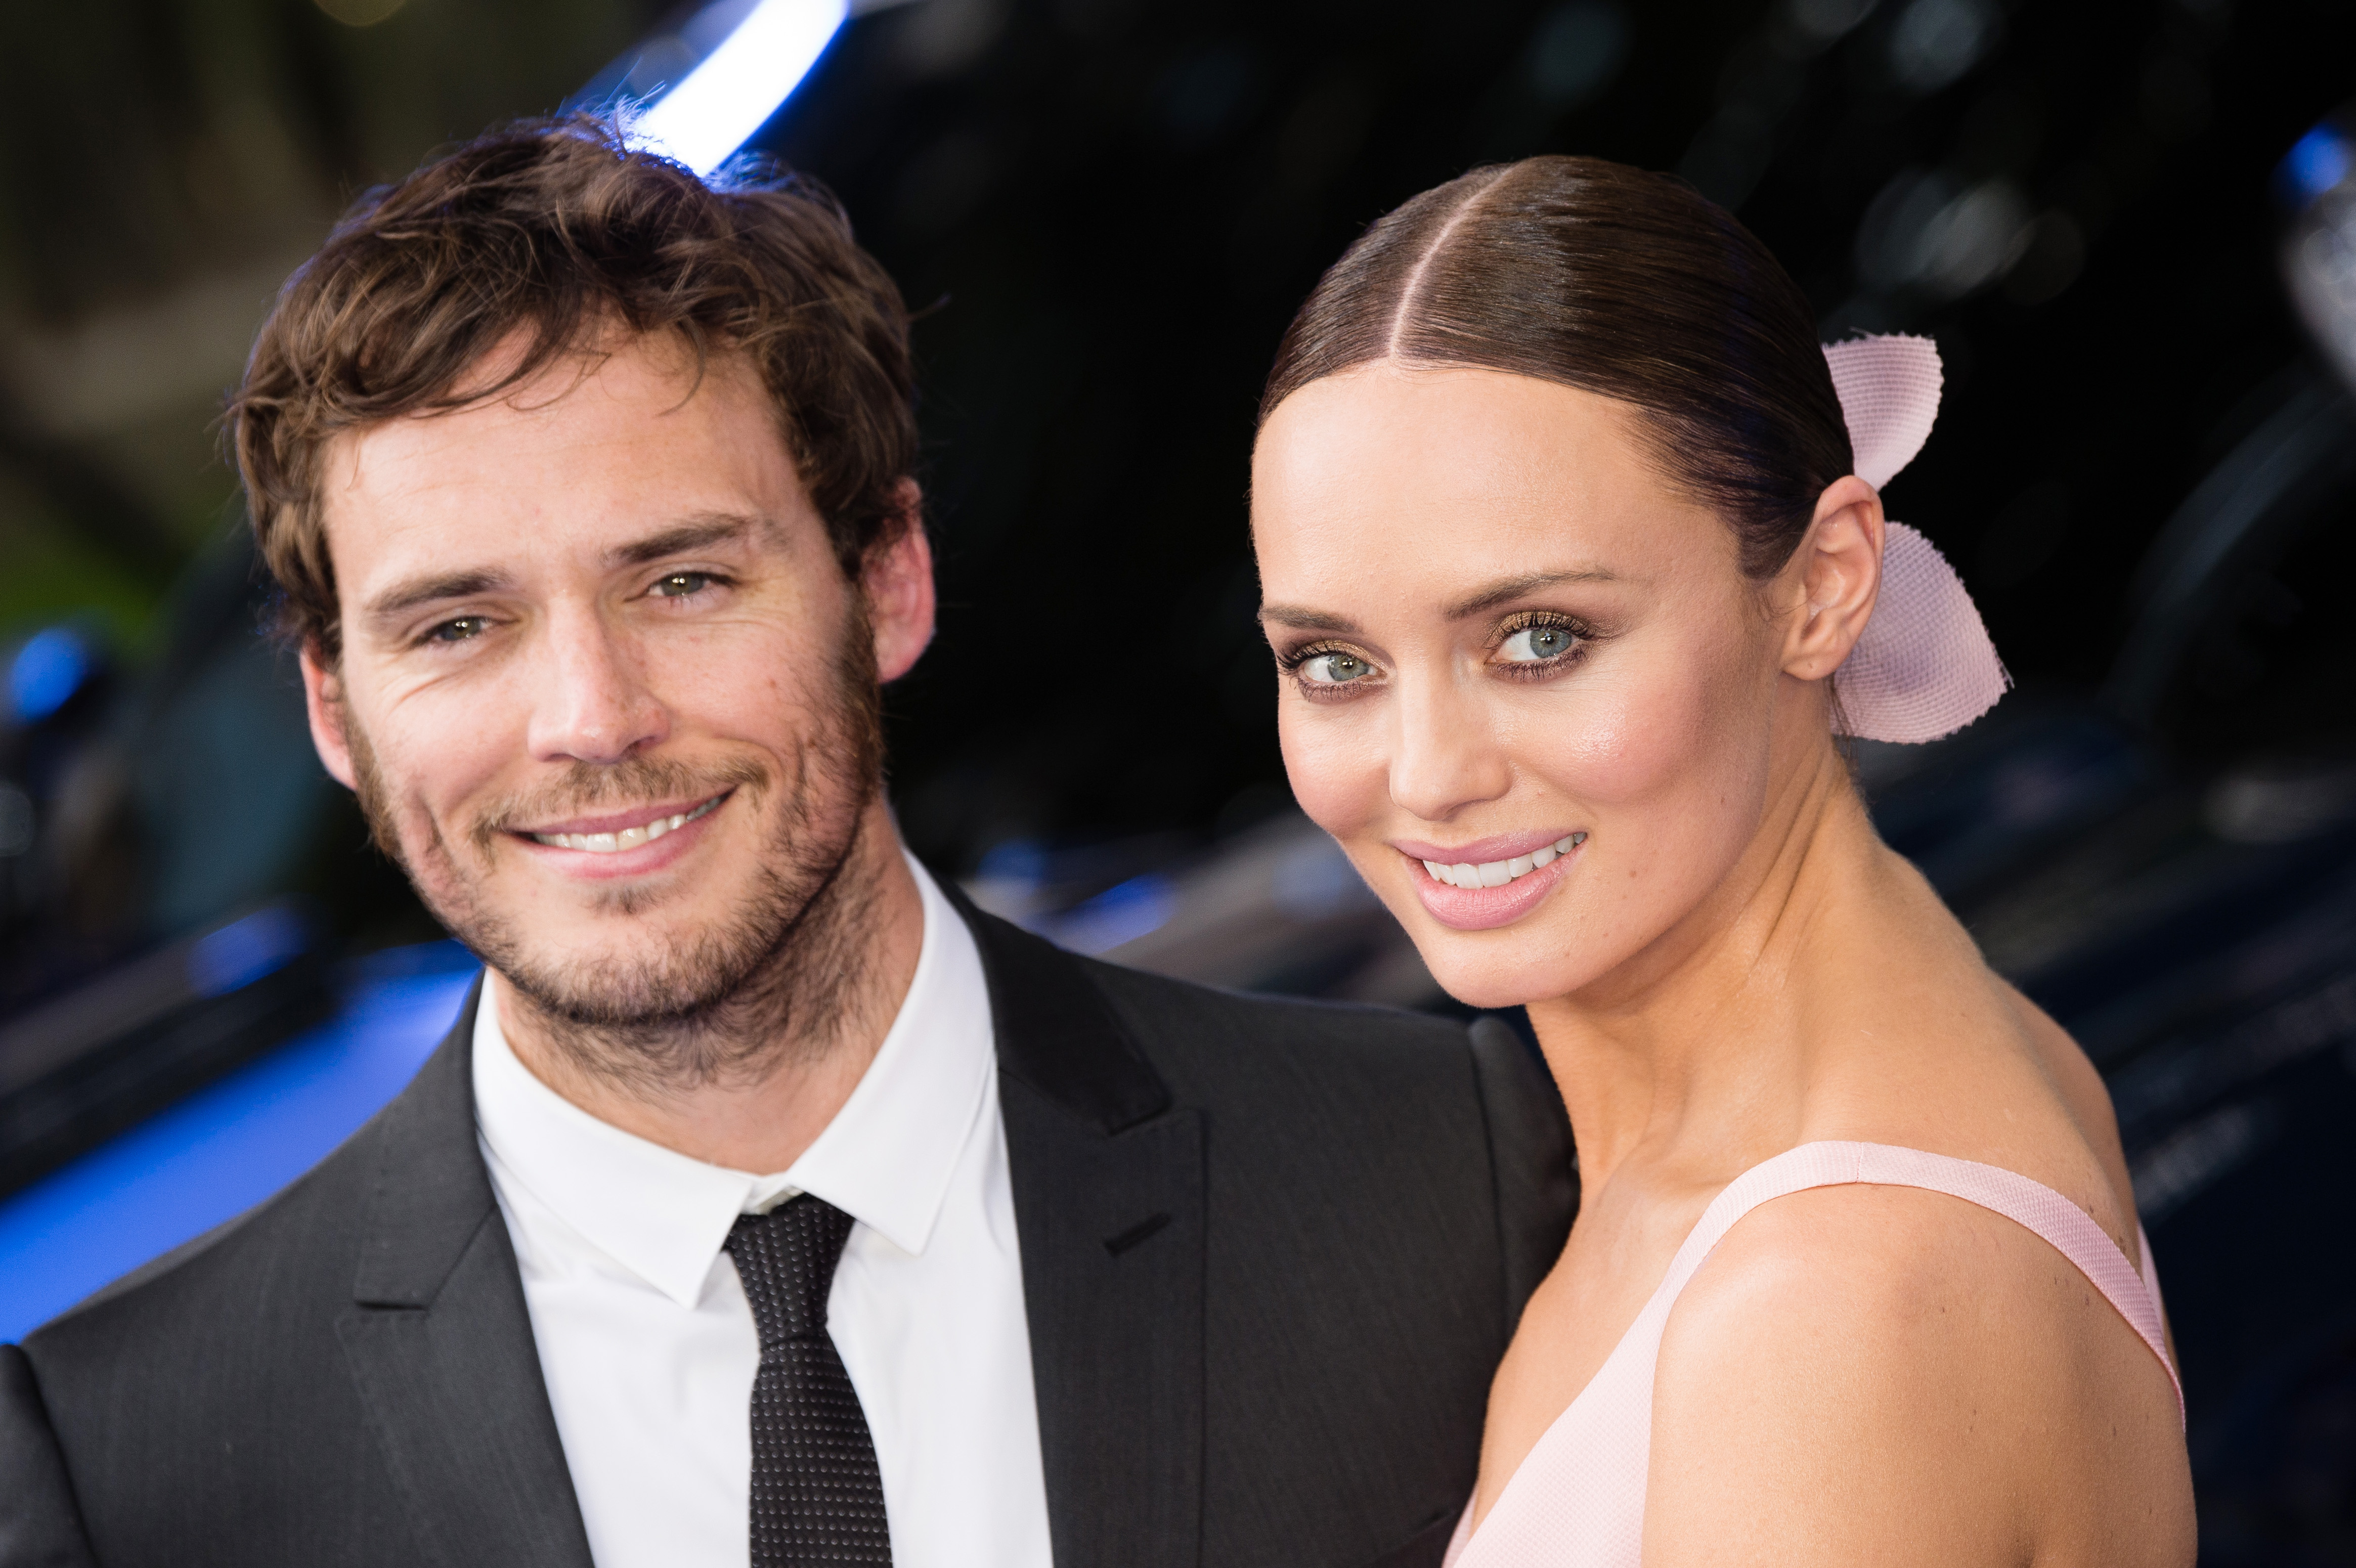 Westlake Legal Group GettyImages-697427968 Sam Claflin and wife Laura Haddock separate after six years of marriage New York Post Lindsey Kupfer fox-news/entertainment/events/couples fnc/entertainment fnc article 4538a124-64f2-550c-bb5c-c84c97558c29